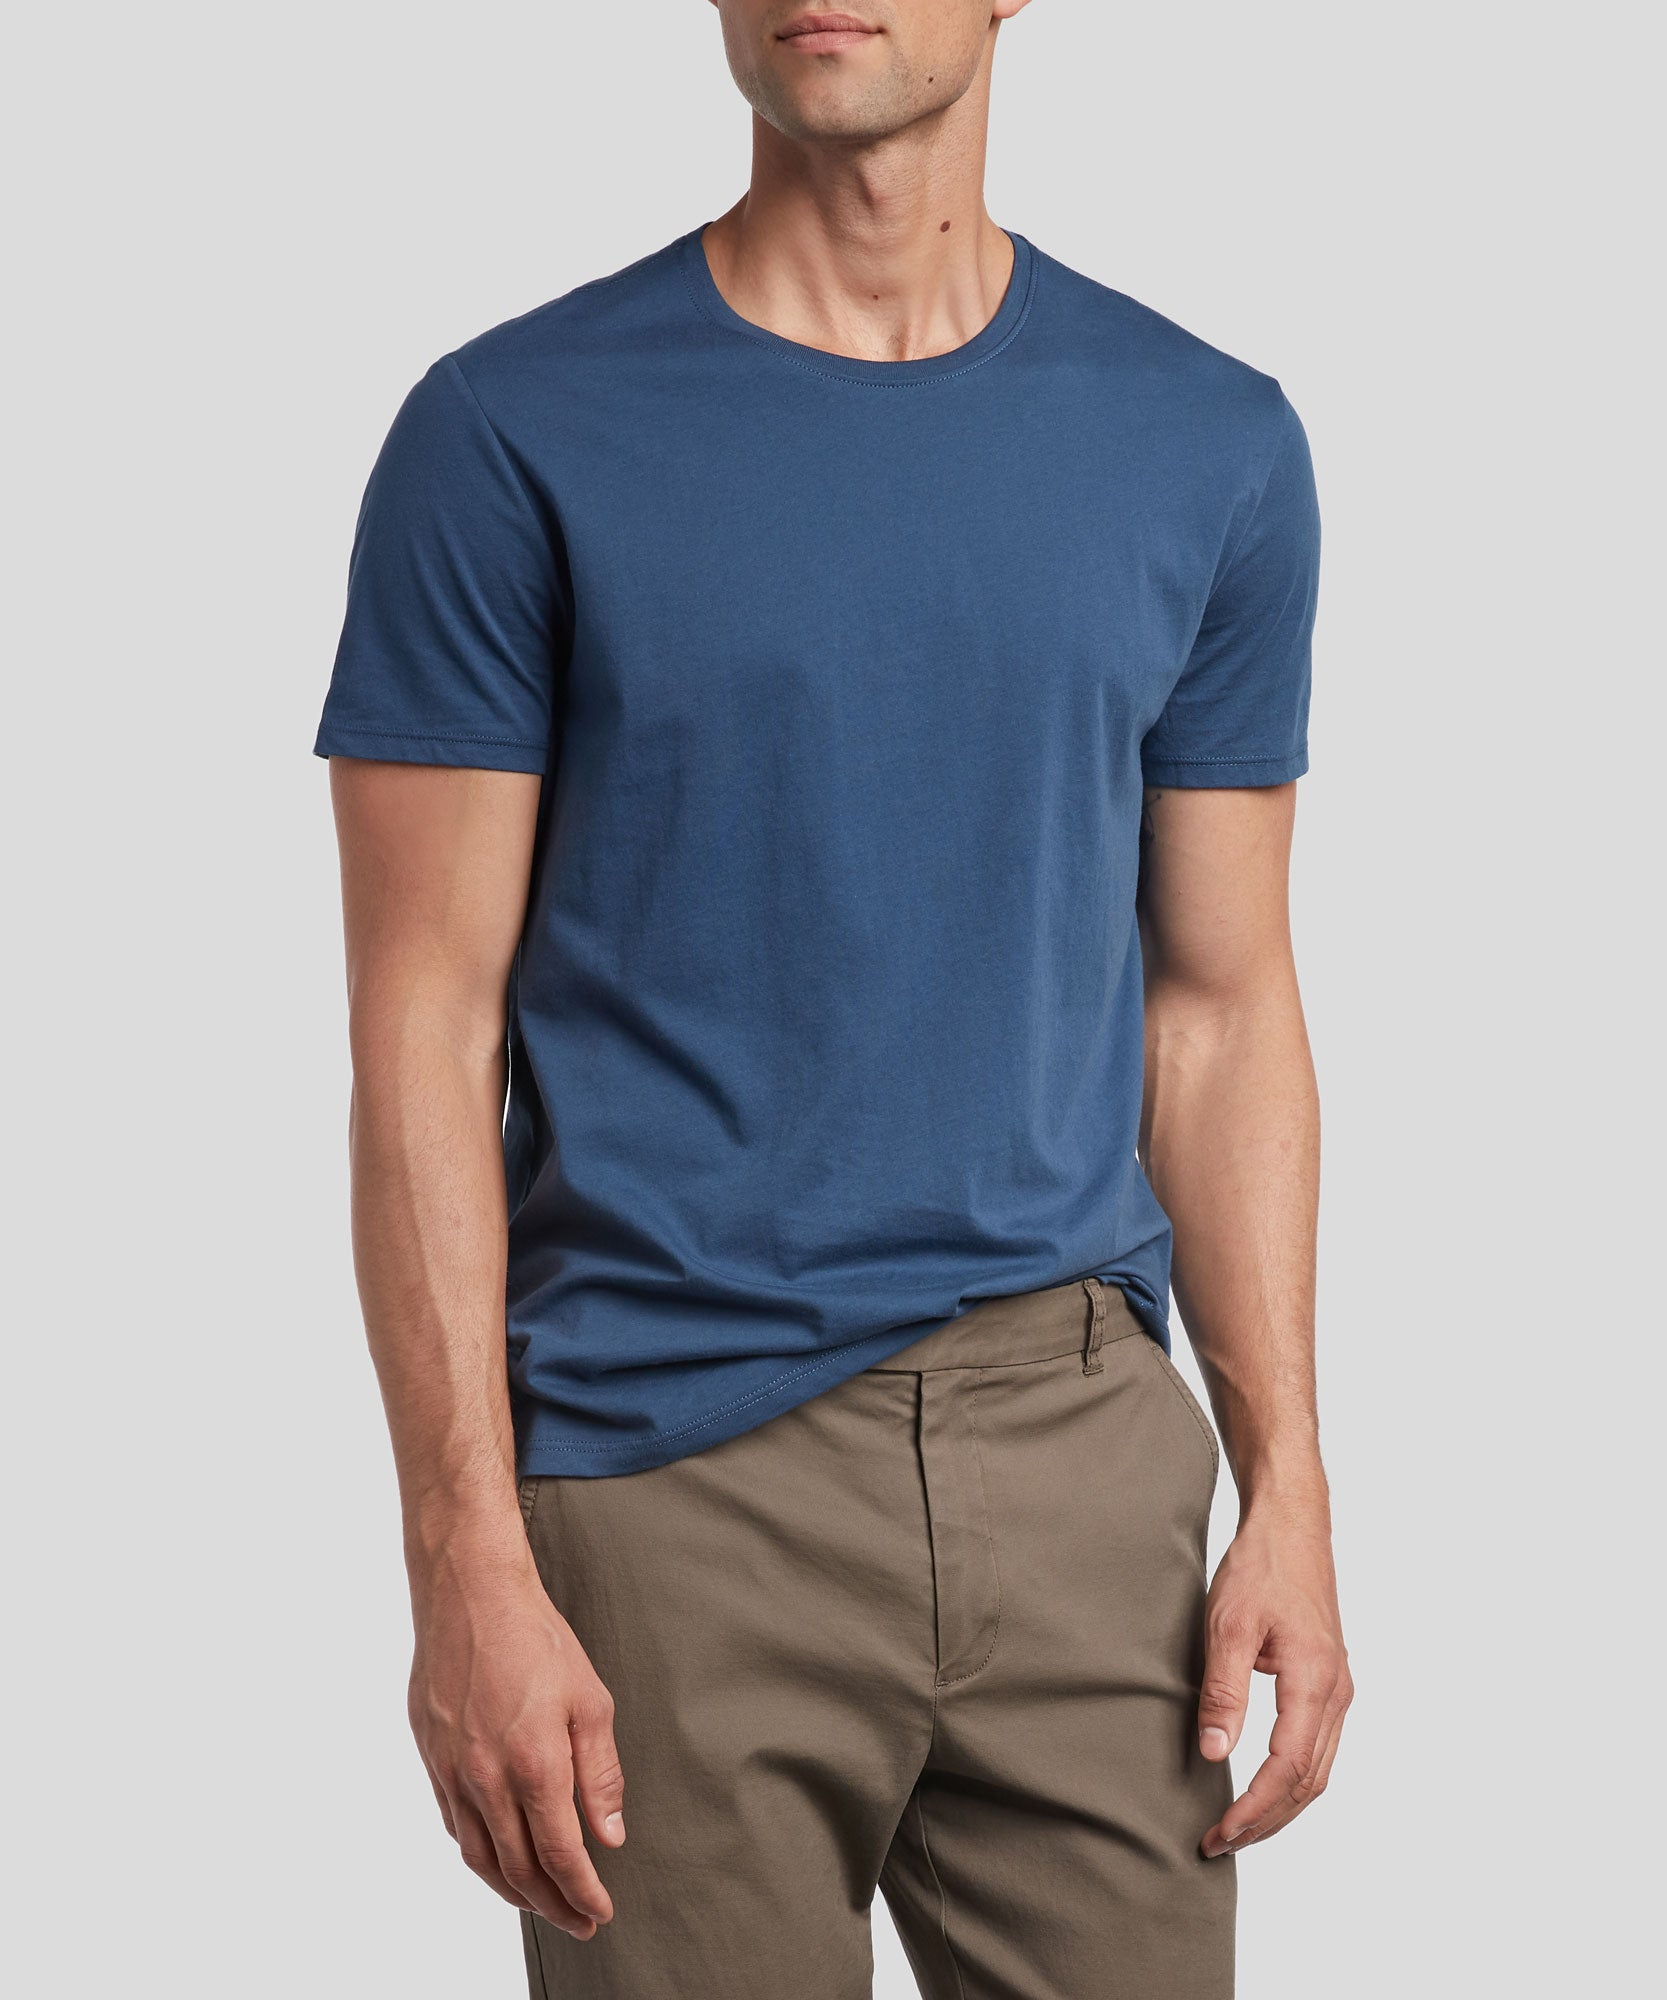 Deep Ocean Classic Jersey Crew Neck Tee - Men's Cotton Short Sleeve T-shirt by ATM Anthony Thomas Melillo